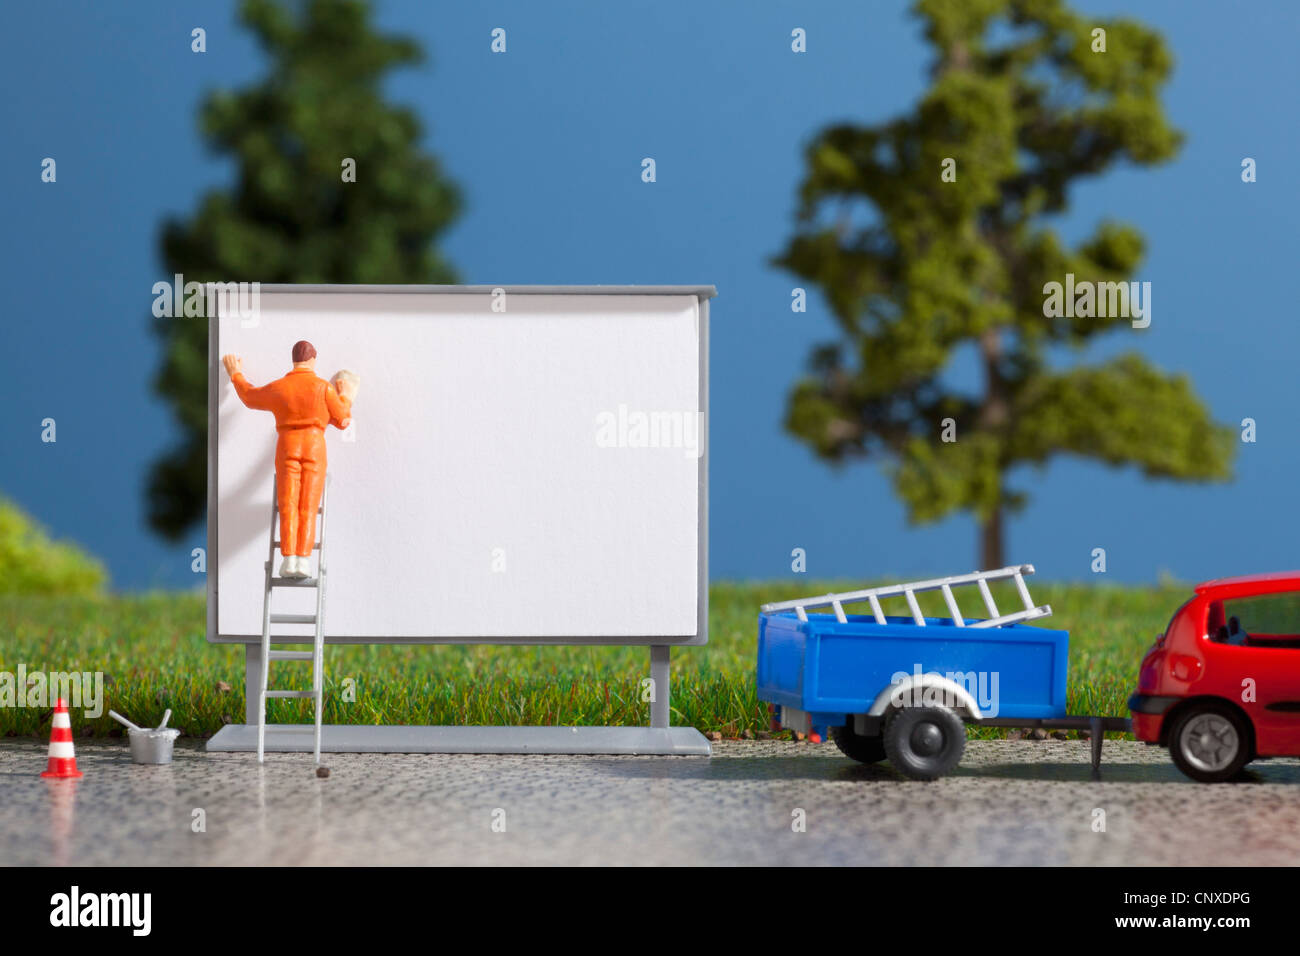 A diorama of a miniature worker billboard posting - Stock Image